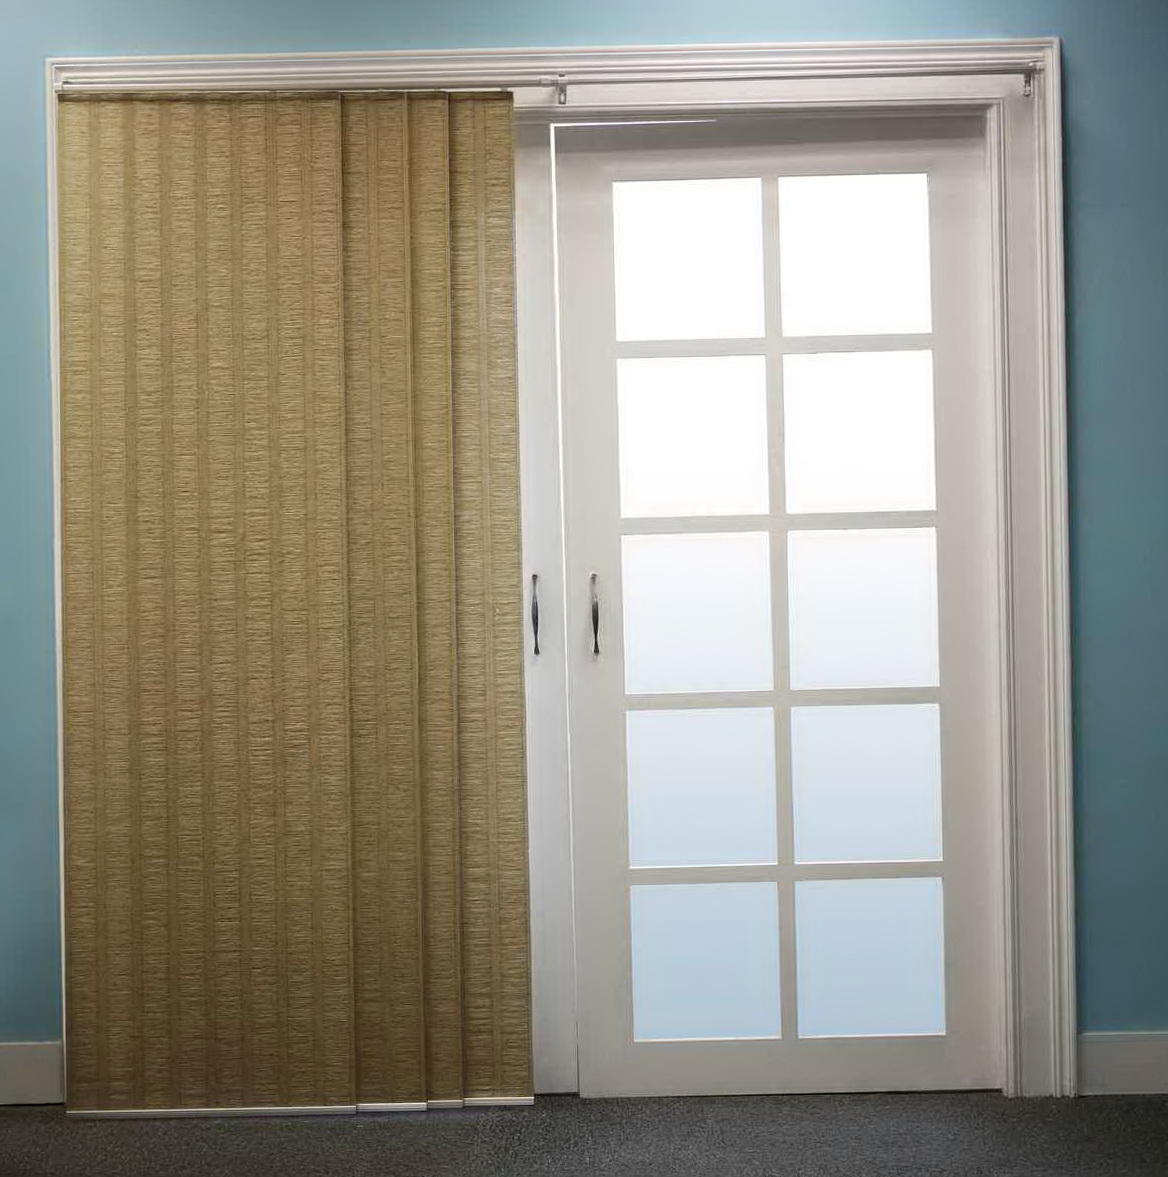 Sliding Panel Curtains Home Depot